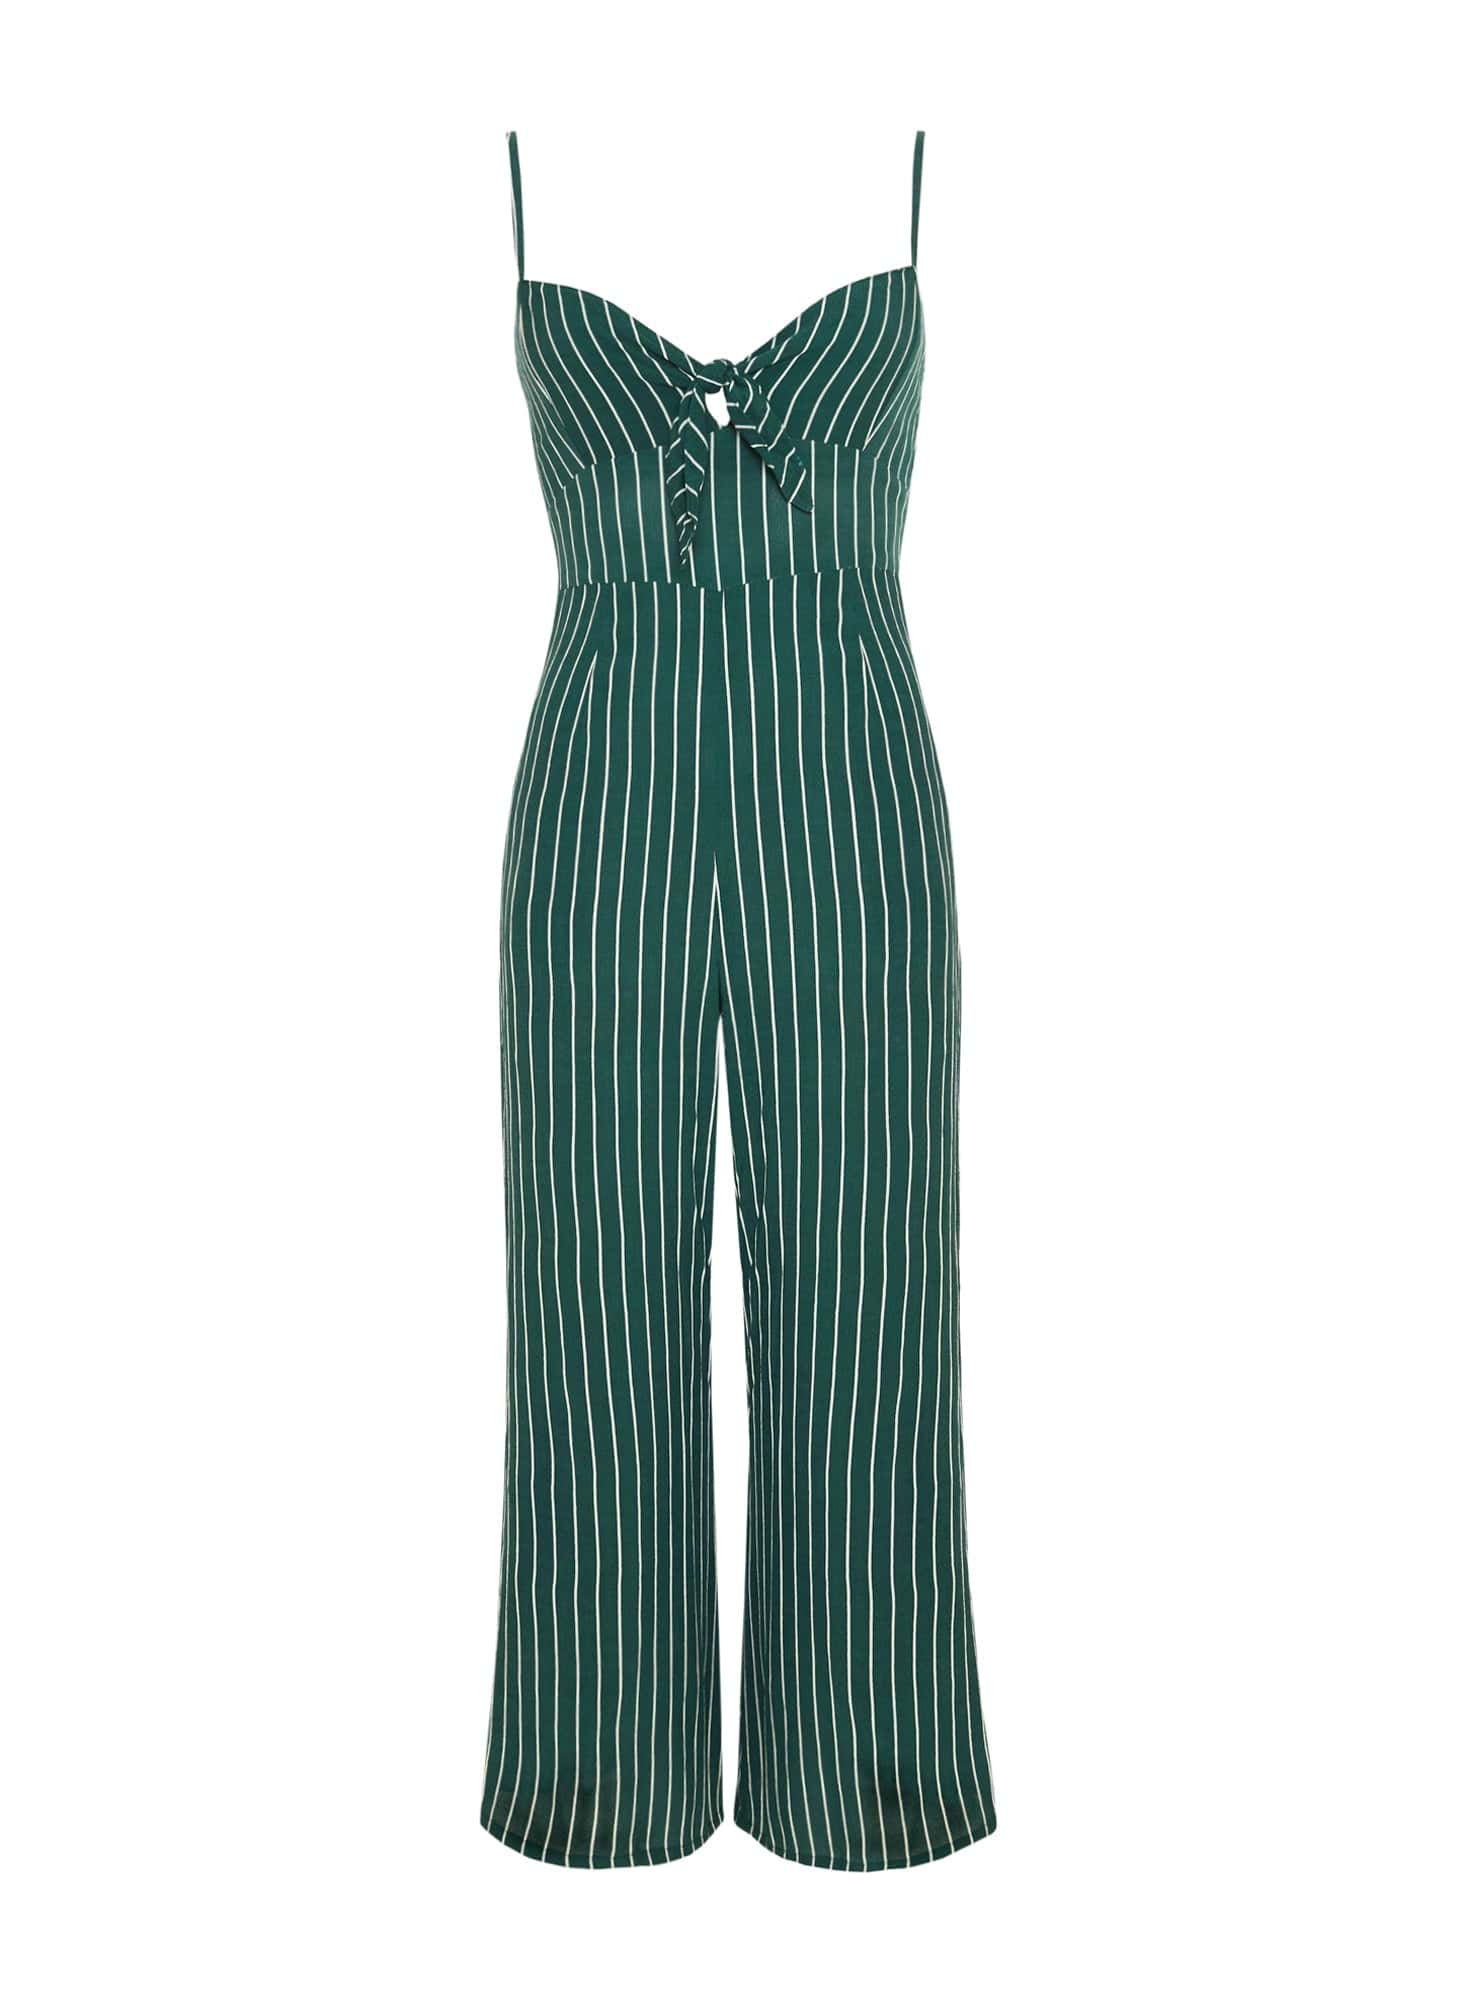 PASEO STRIPE PRINT - PRESLEY JUMPSUIT - FINAL SALE